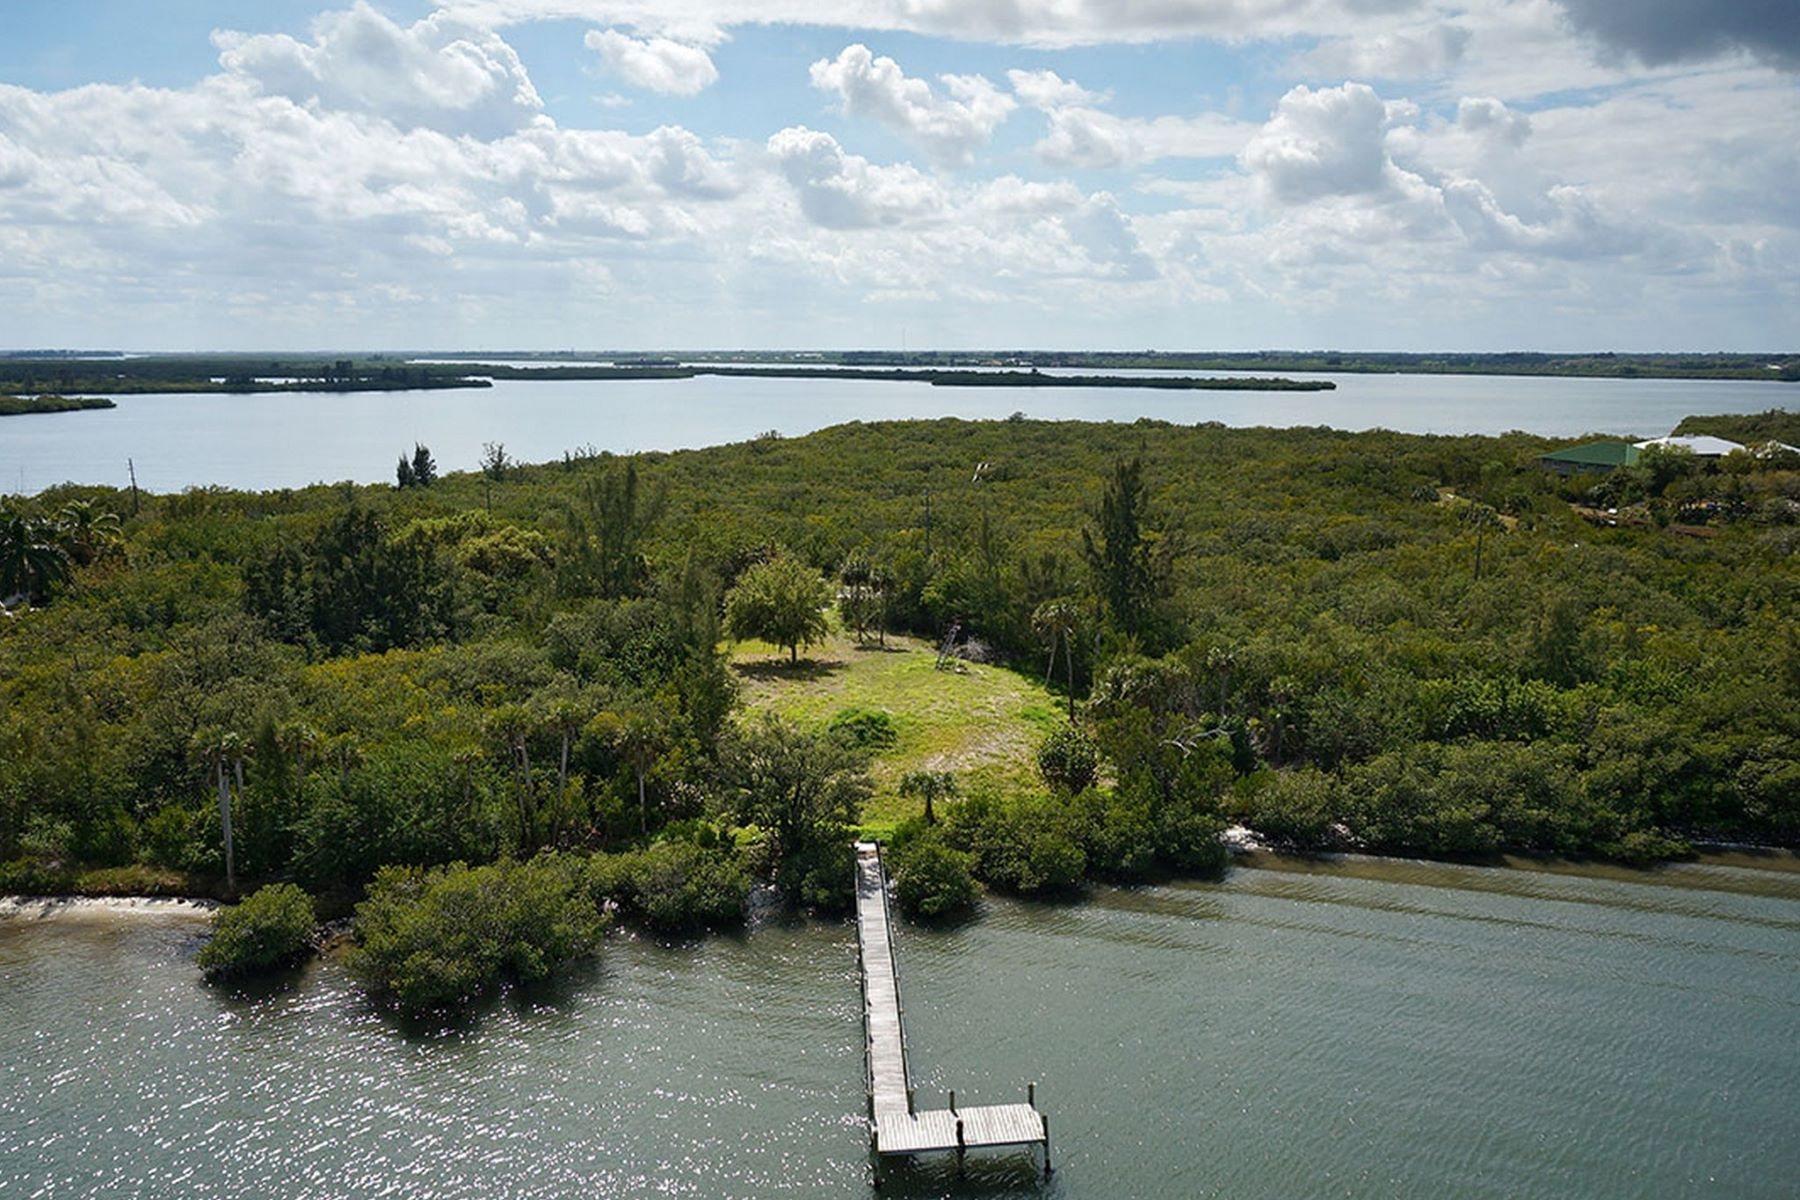 Terreno por un Venta en 3+ Acre Riverfront Homesite 250 Live Oak Lane, Vero Beach, Florida, 32963 Estados Unidos